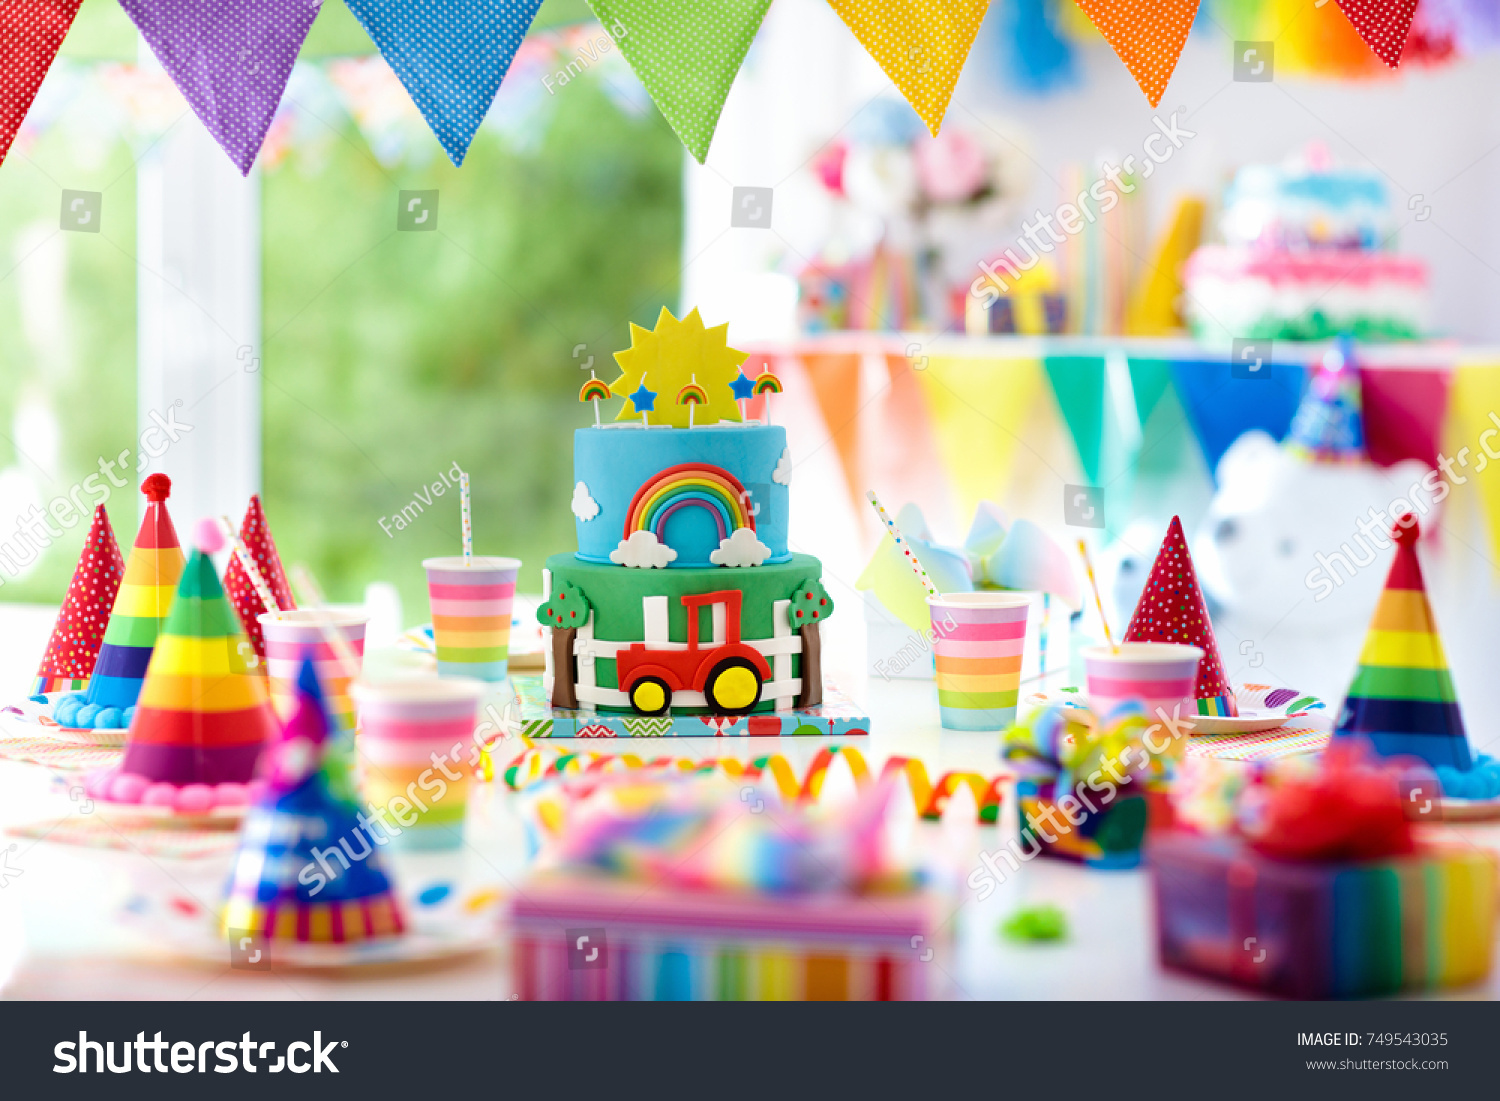 Kids Birthday Party Decoration Colorful Cake Stock Photo 749543035